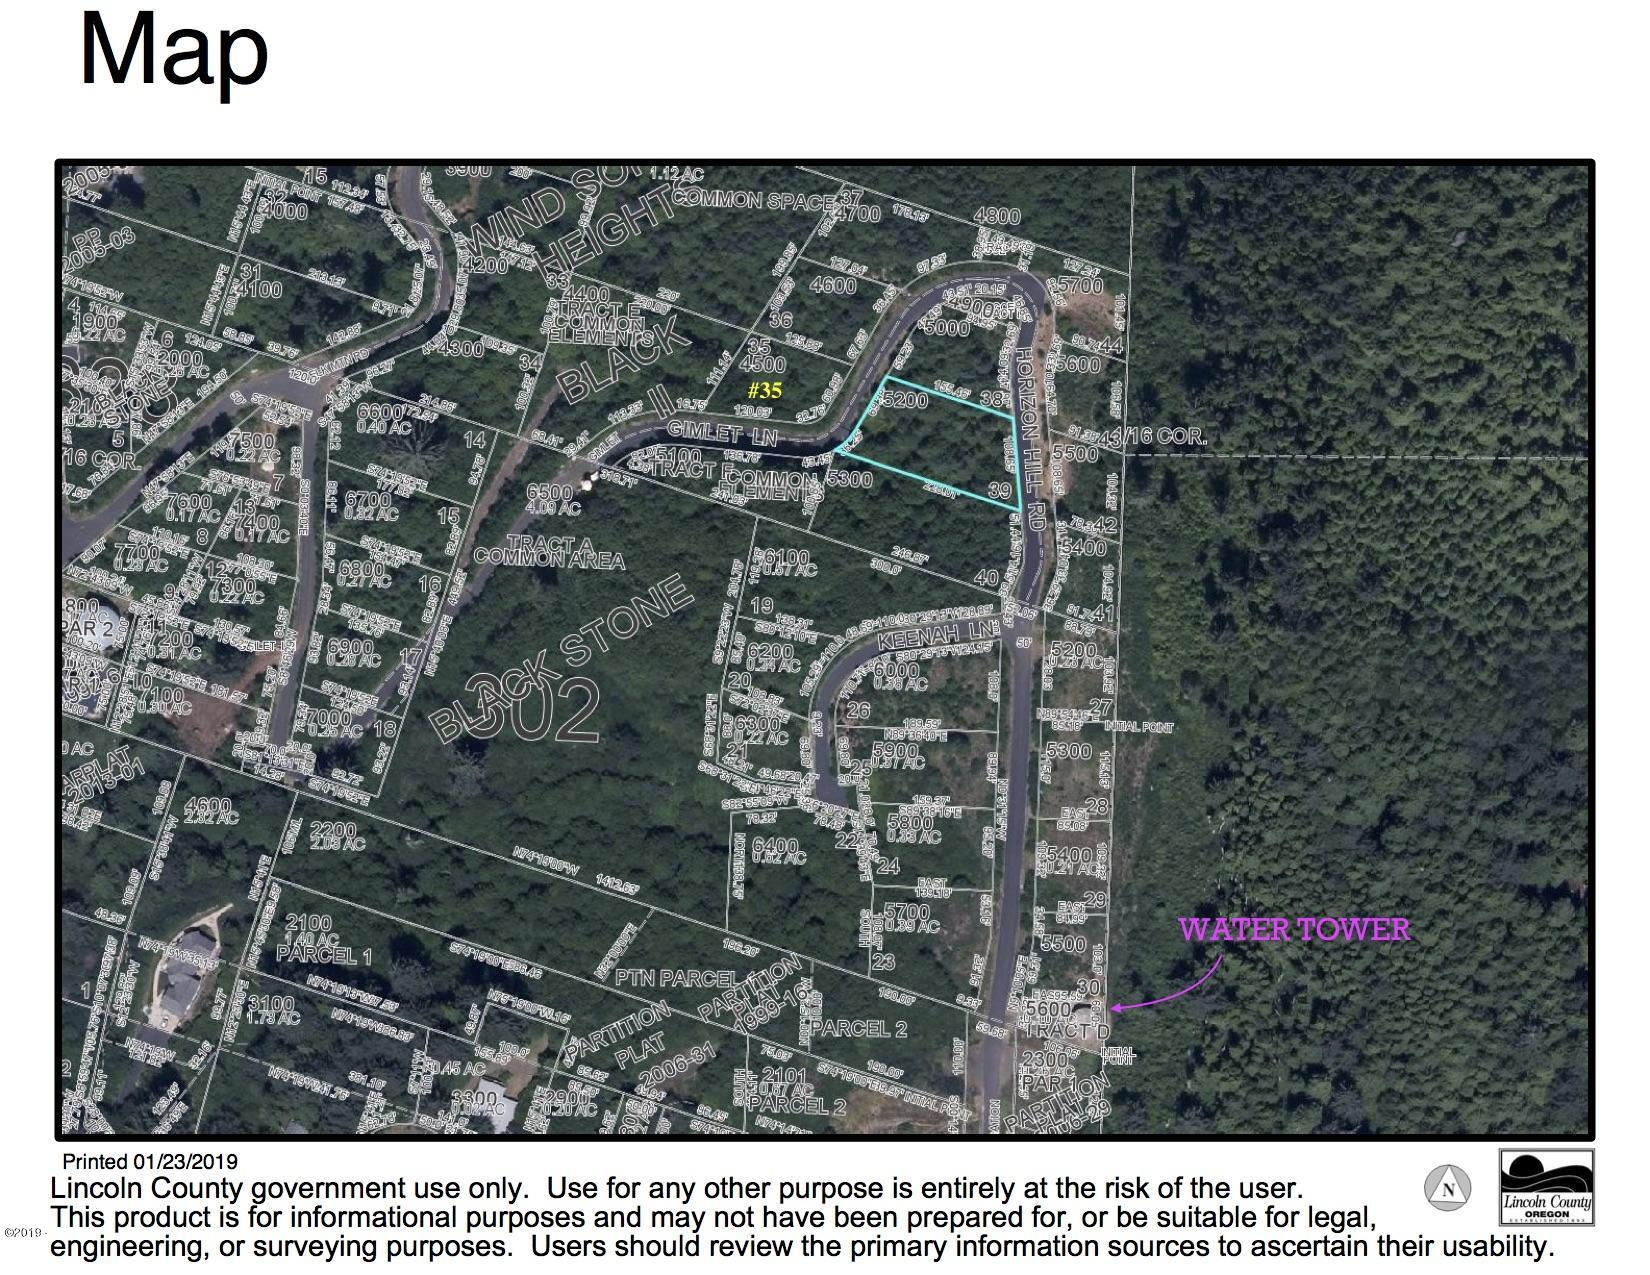 LOT 35 T/l#4500 Gimlet Lane, Yachats, OR 97498 - T:L4500 Aerial map